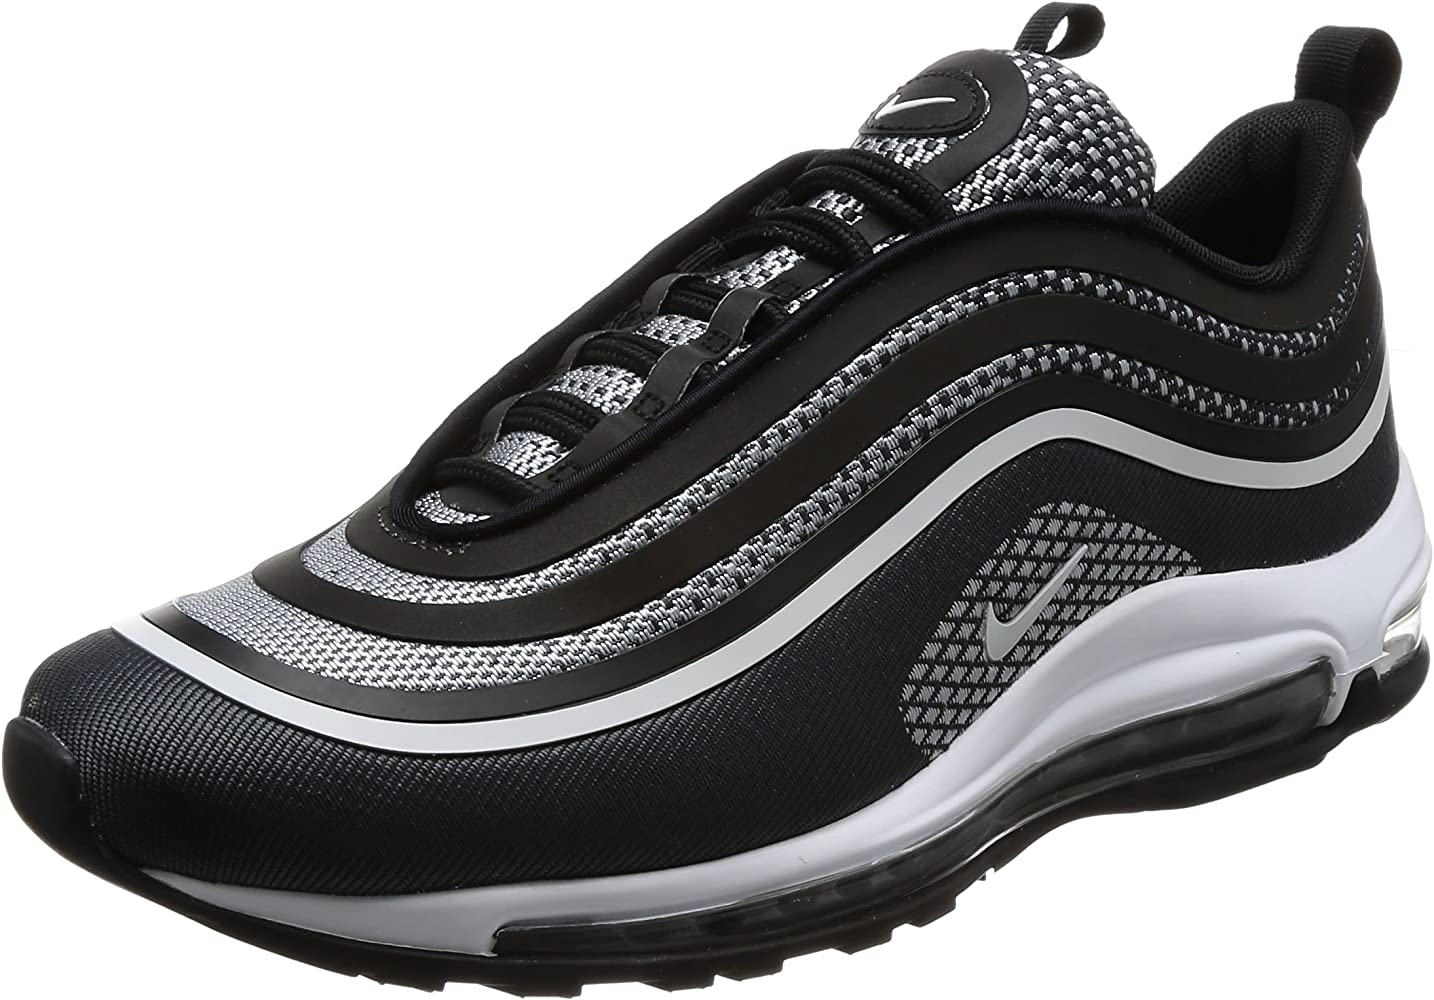 outlet store df0ac 842bf Men's Air Max 97 Ultra '17 Black and Silver Sneaker 43(IT)-10(US) Black